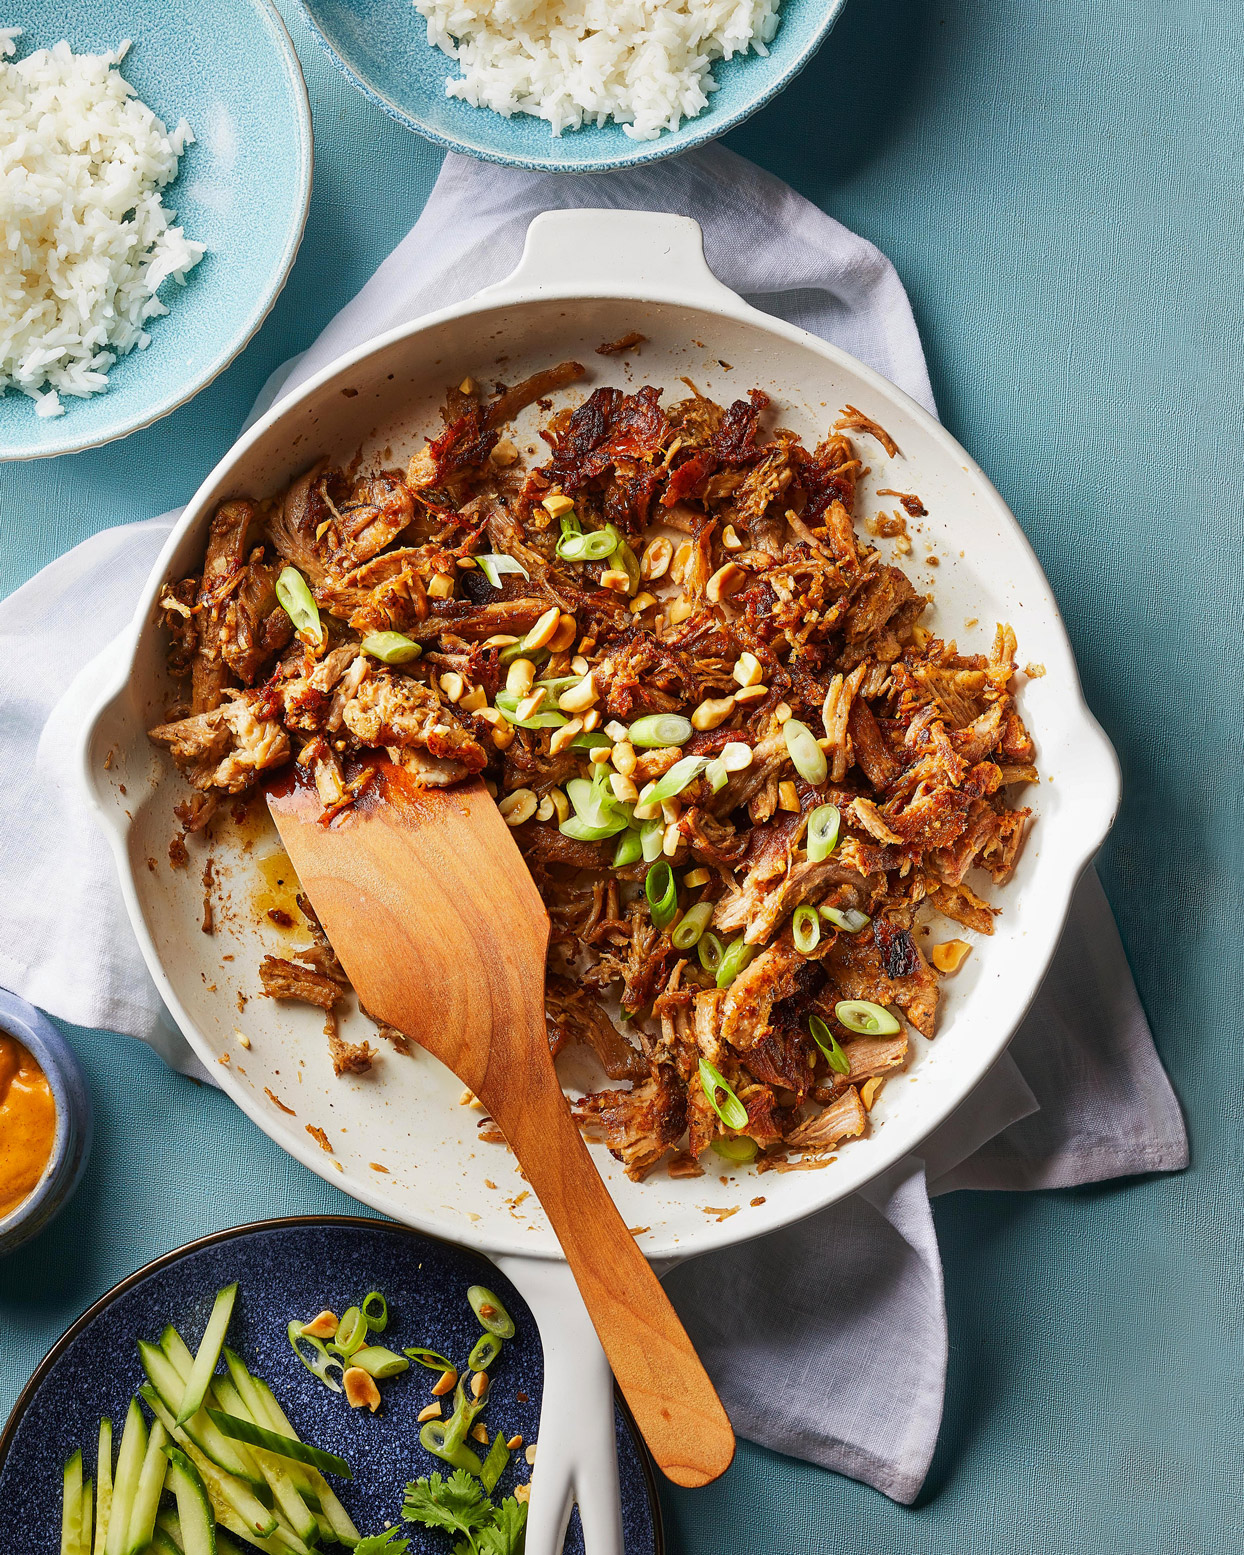 Shredded Pork Roast in a skillet with green onions